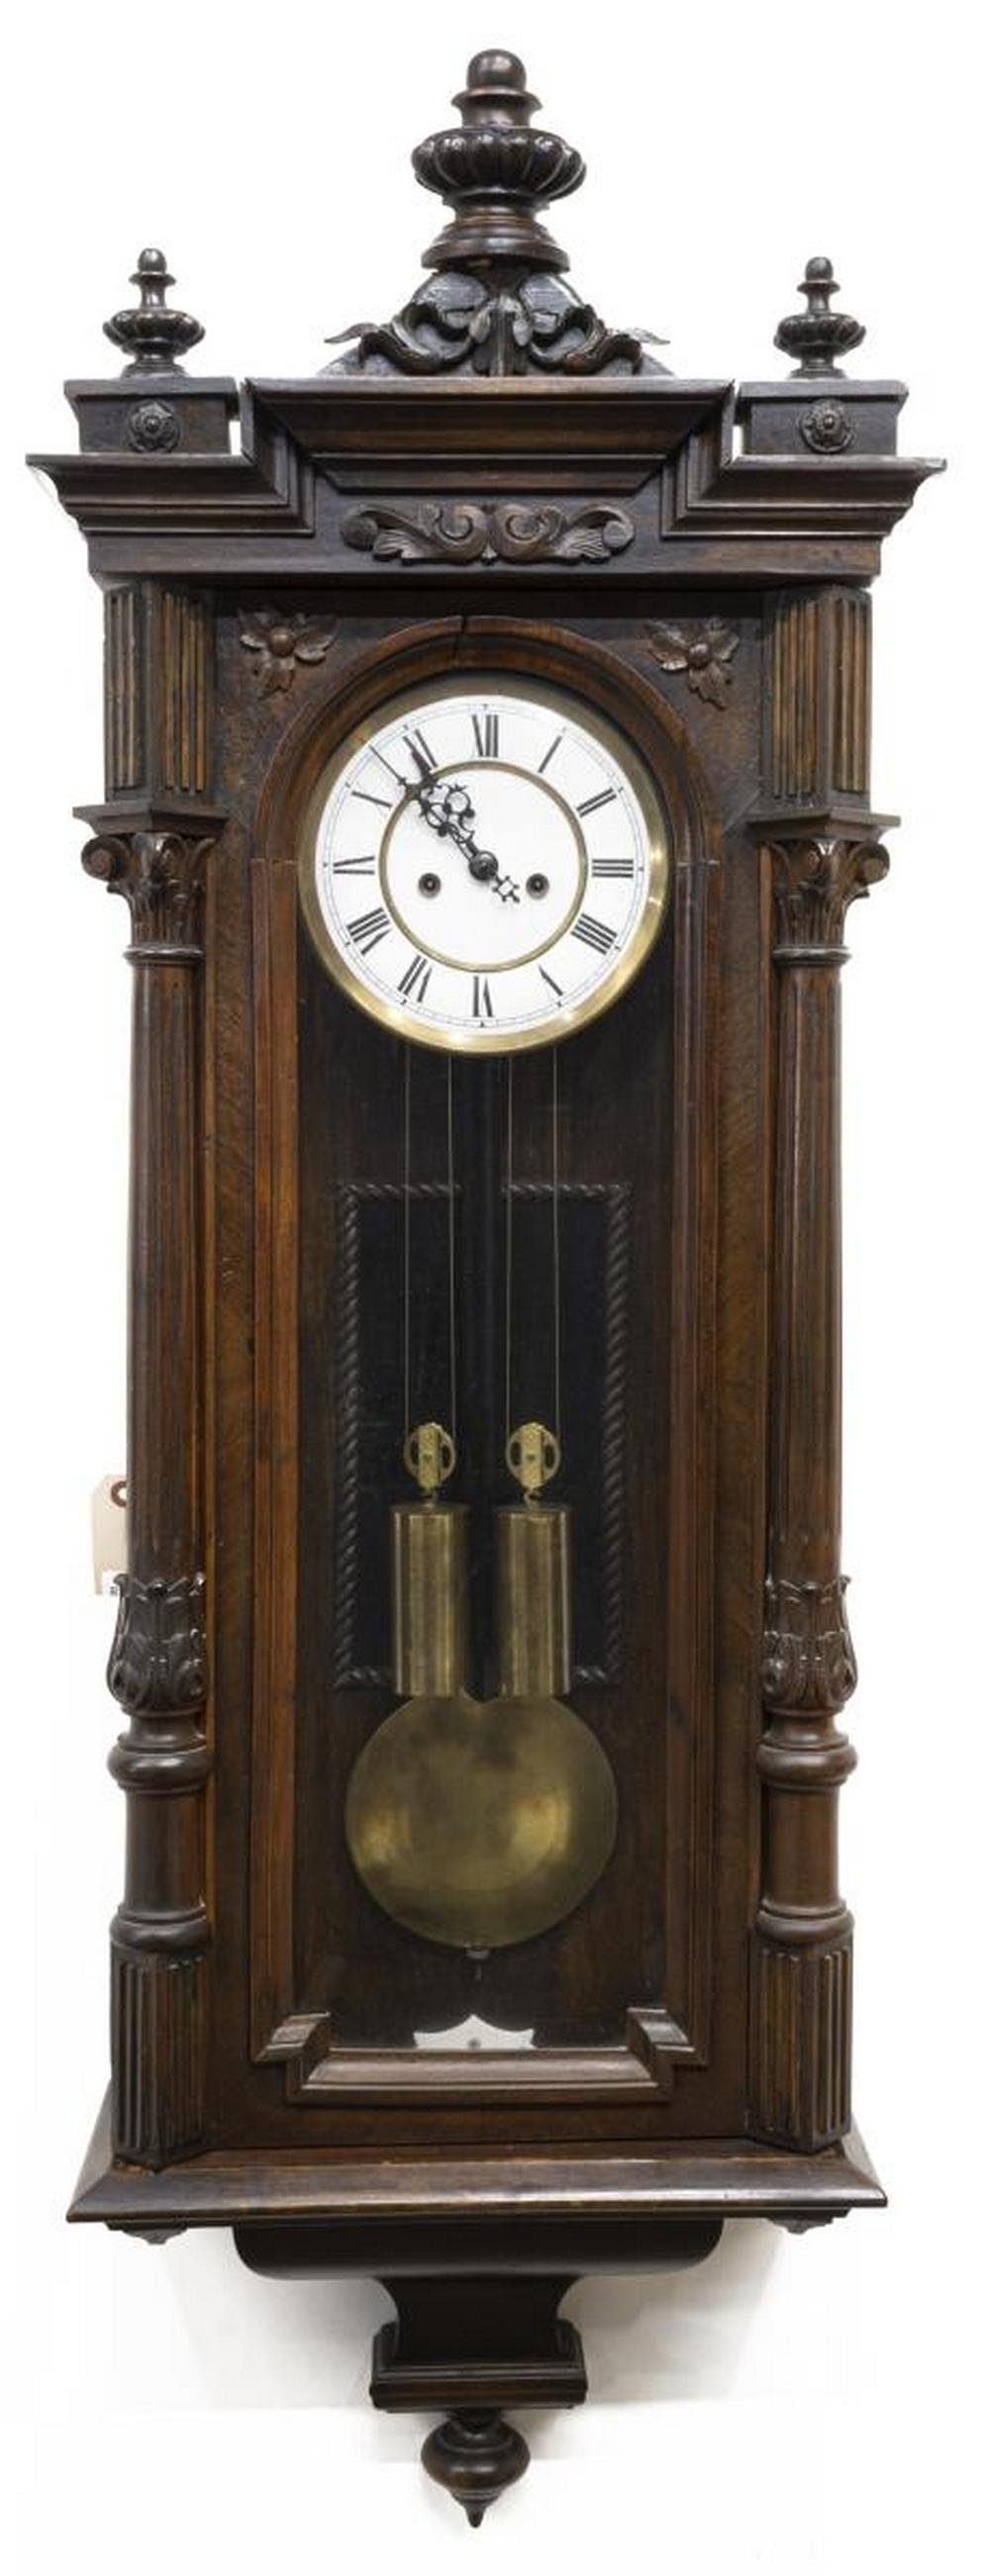 GUSTAV BECKER TWO WEIGHT REGULATOR WALL CLOCK